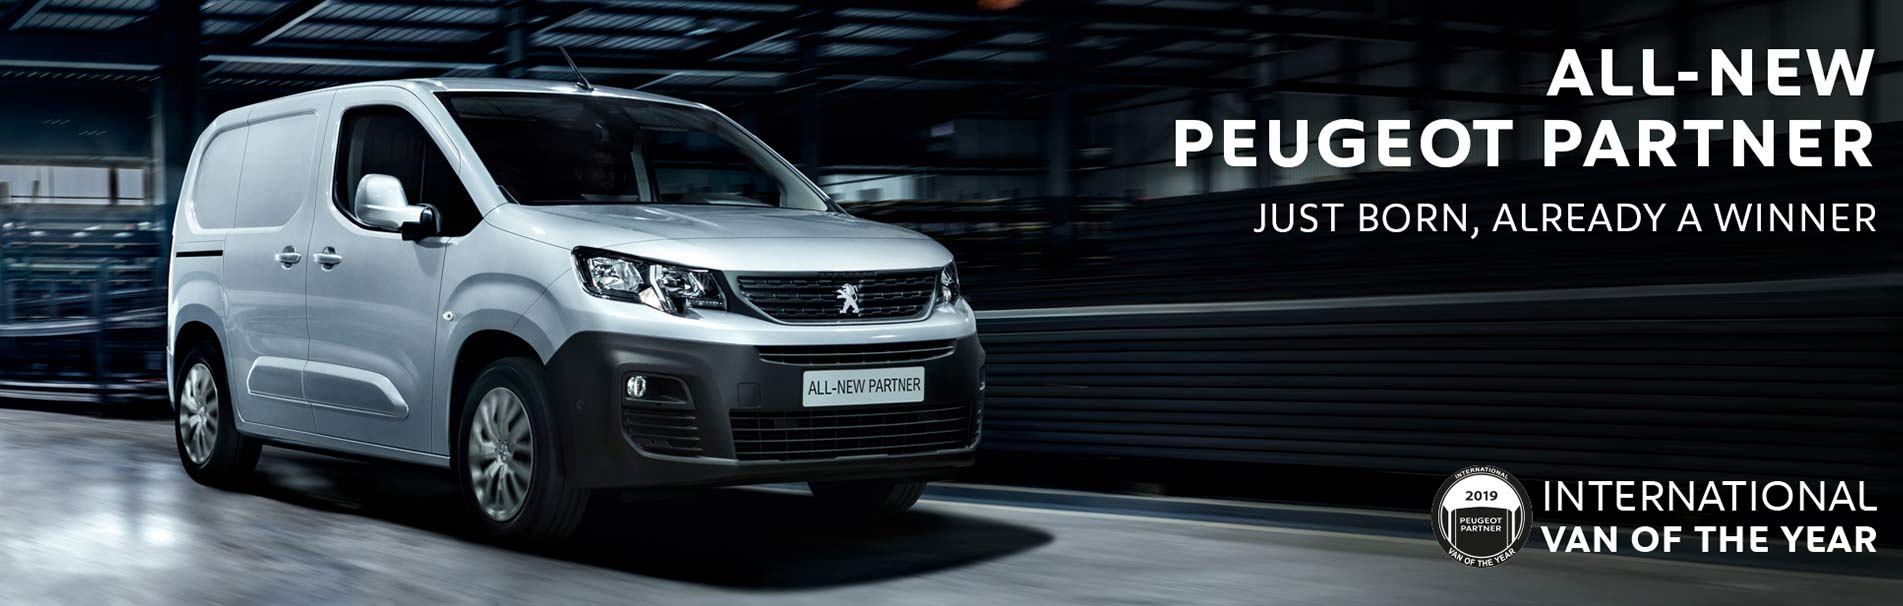 new-peugeot-partner-demo-arrived